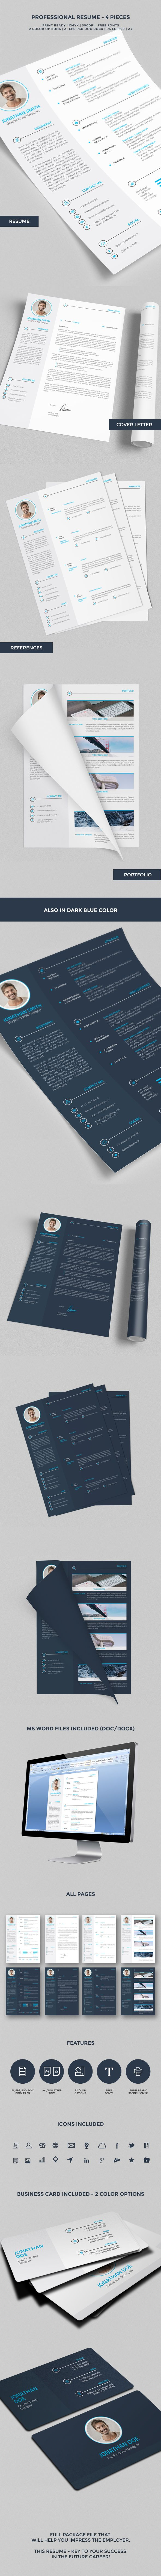 best images about cv s infographic resume 17 best images about cv s infographic resume creative resume and cv design